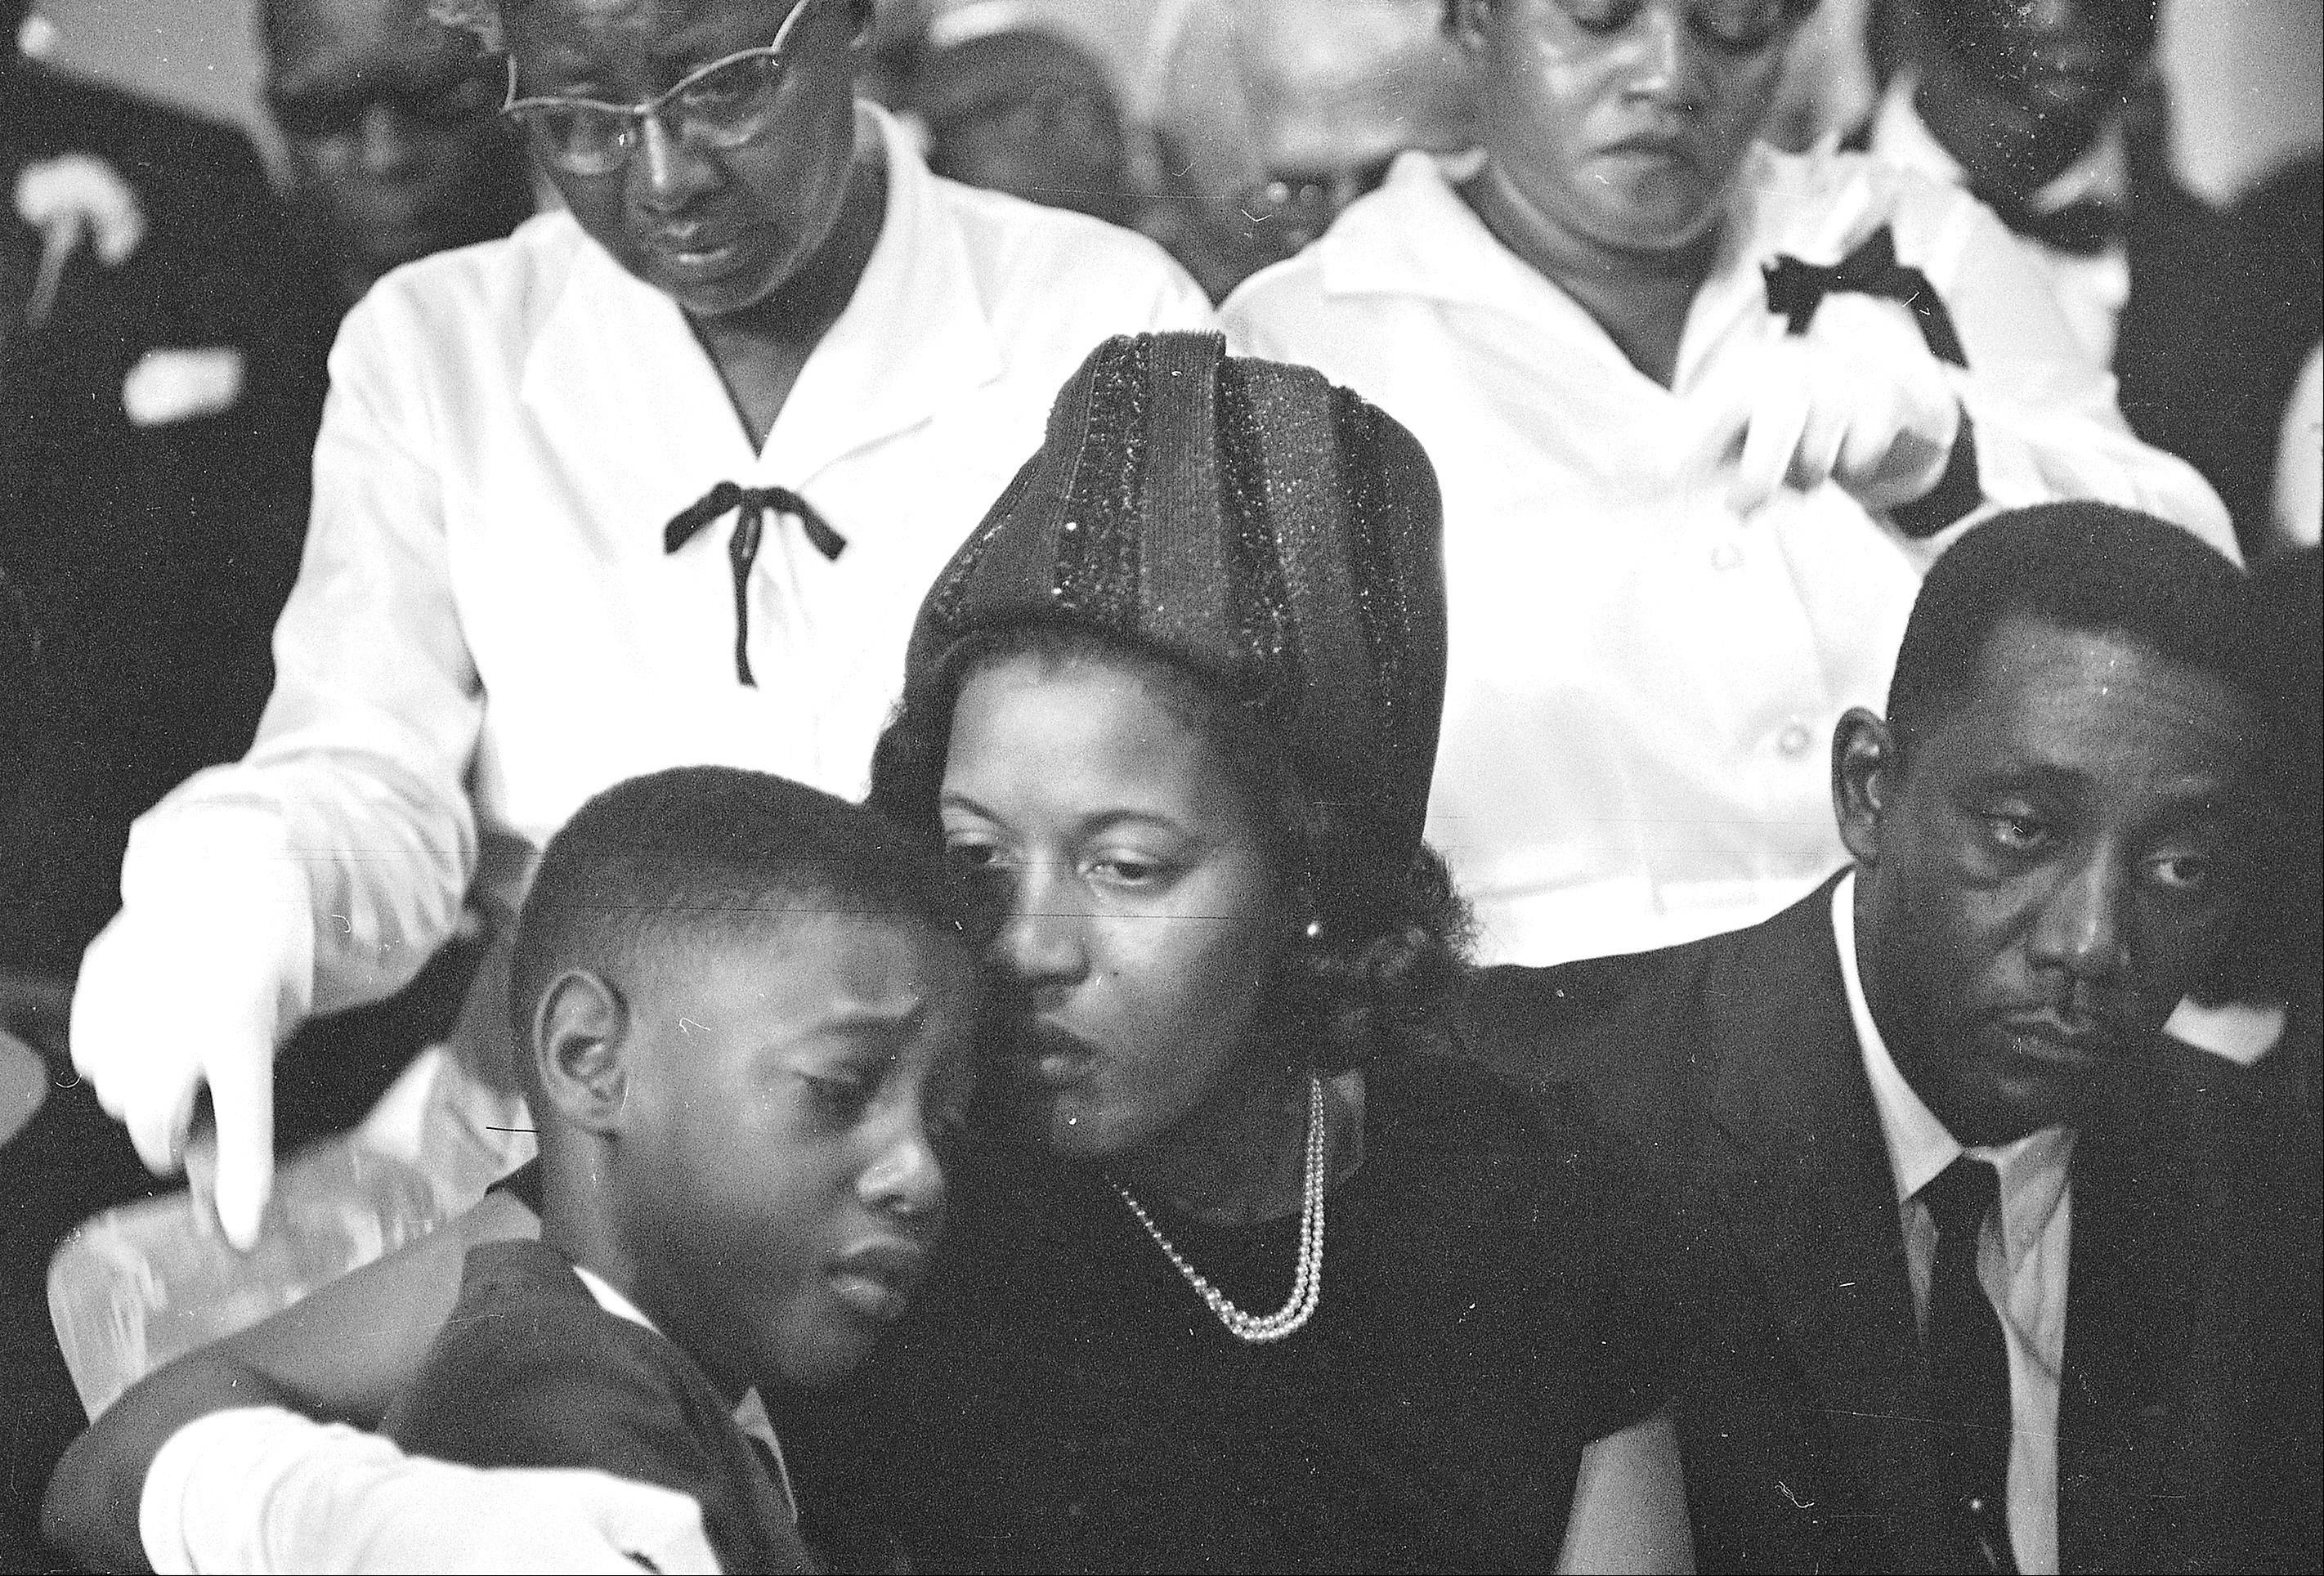 Myrlie Louise Evers comforts her 9-year-old son, Darrel, at the funeral in Jackson, Miss. for slain integration leader Medgar Evers. Several events are being held to remember Evers, the first Mississippi field secretary of the National Association for the Advancement of Colored People. He was 37 when he was assassinated outside the family�s north Jackson home on June 12, 1963.